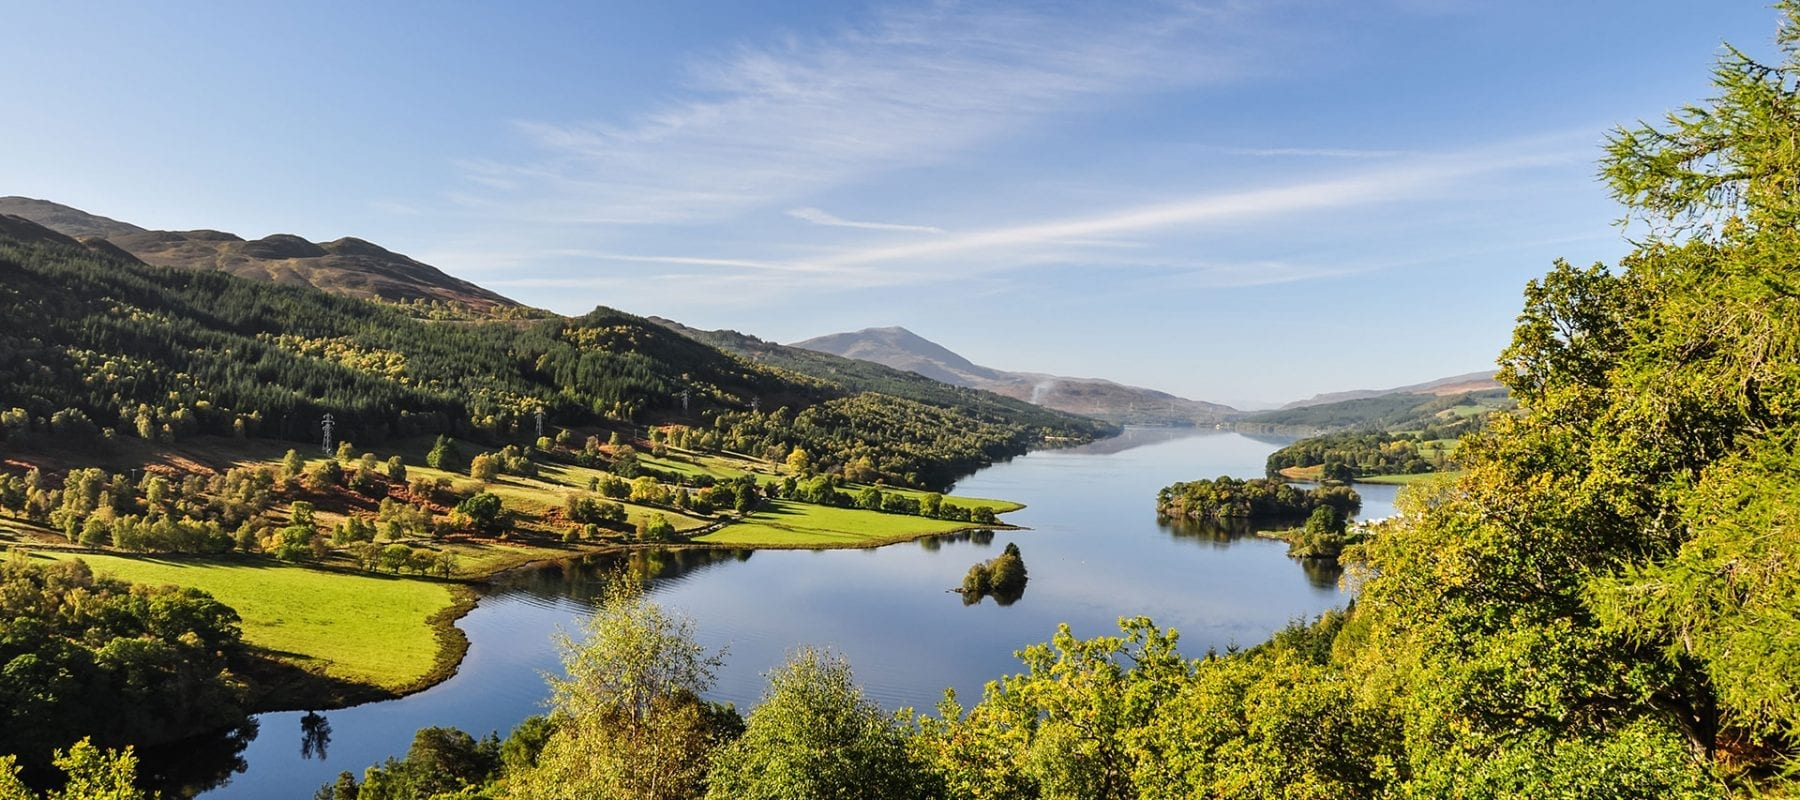 Breathe in the peace & tranquillity of Highland Perthshire at its finest